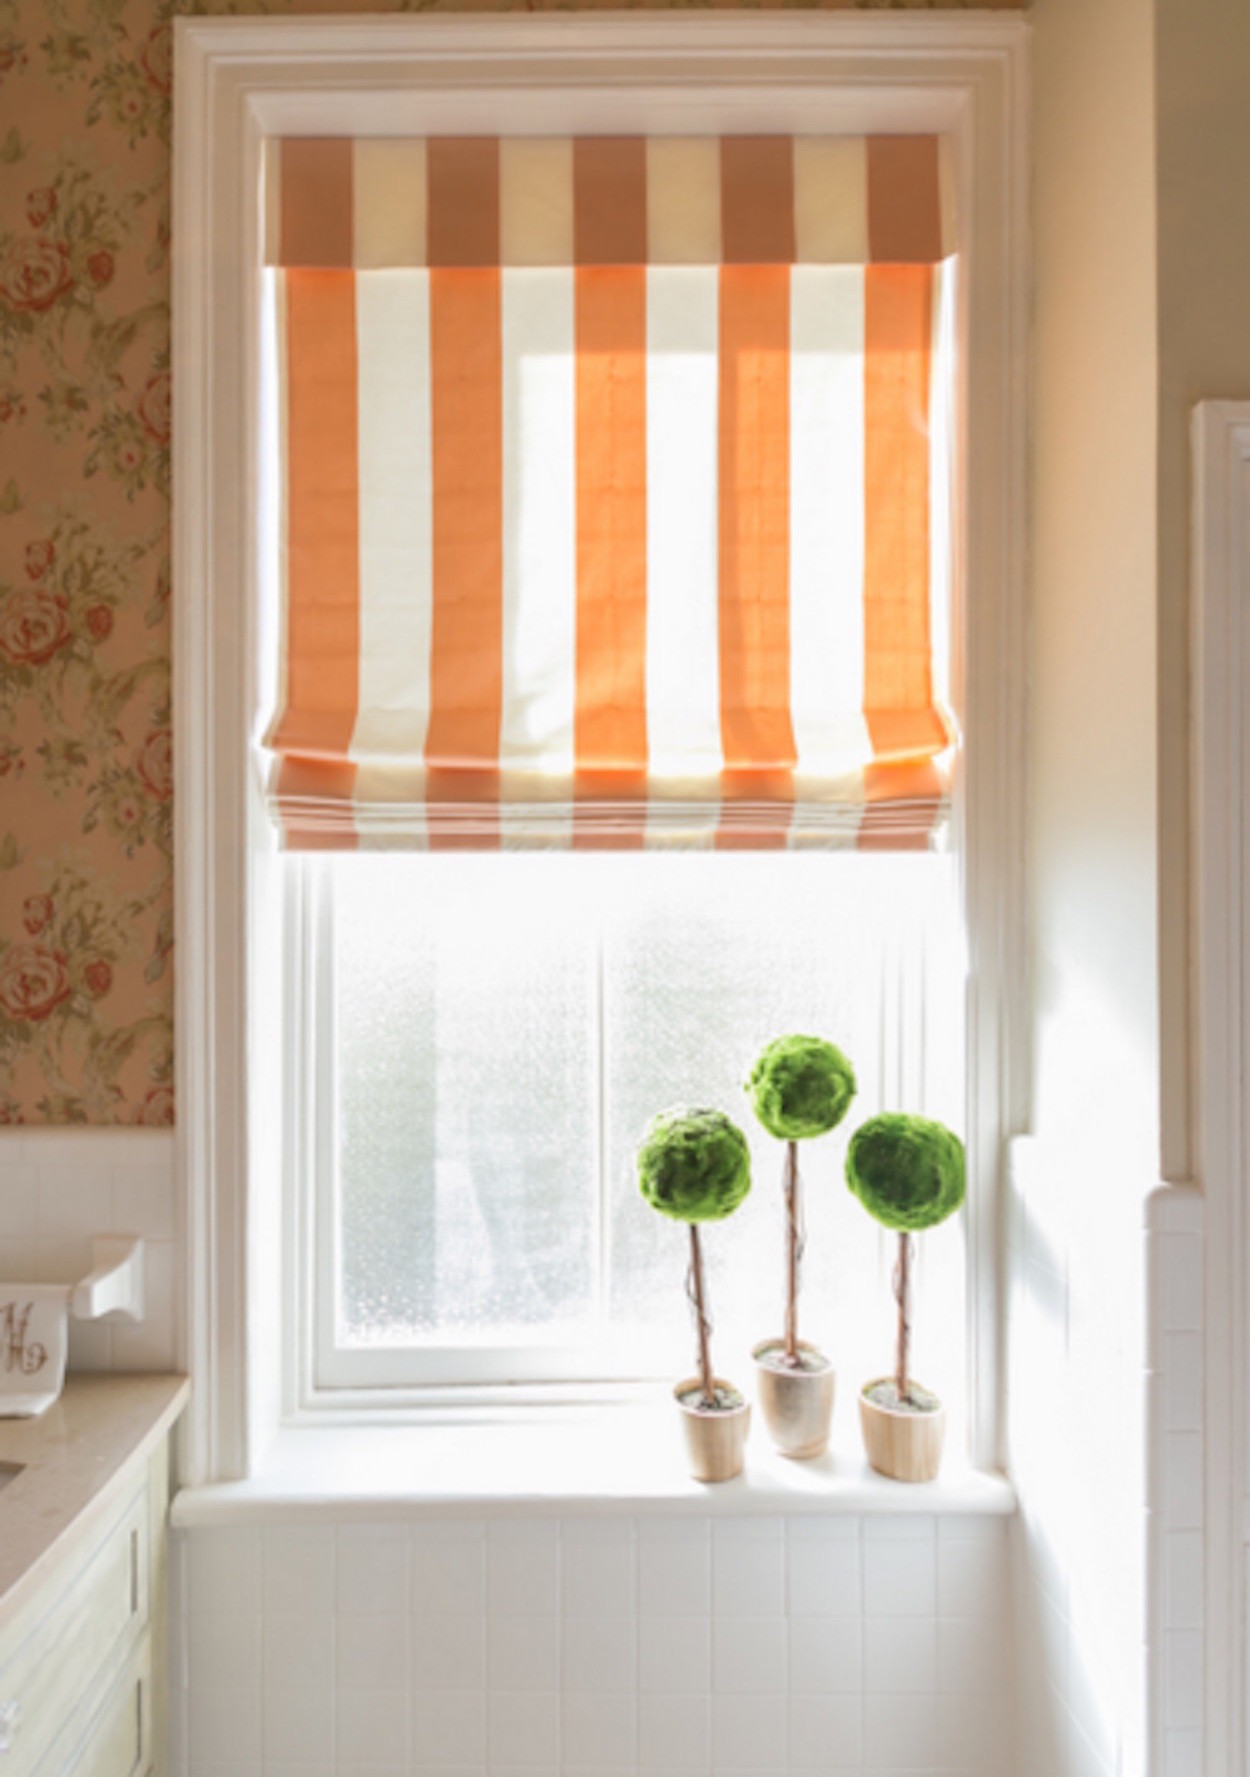 small bathroom window treatments. 7 Different Bathroom Window Treatments You Might Not Have Thought Of  Martha Stewart